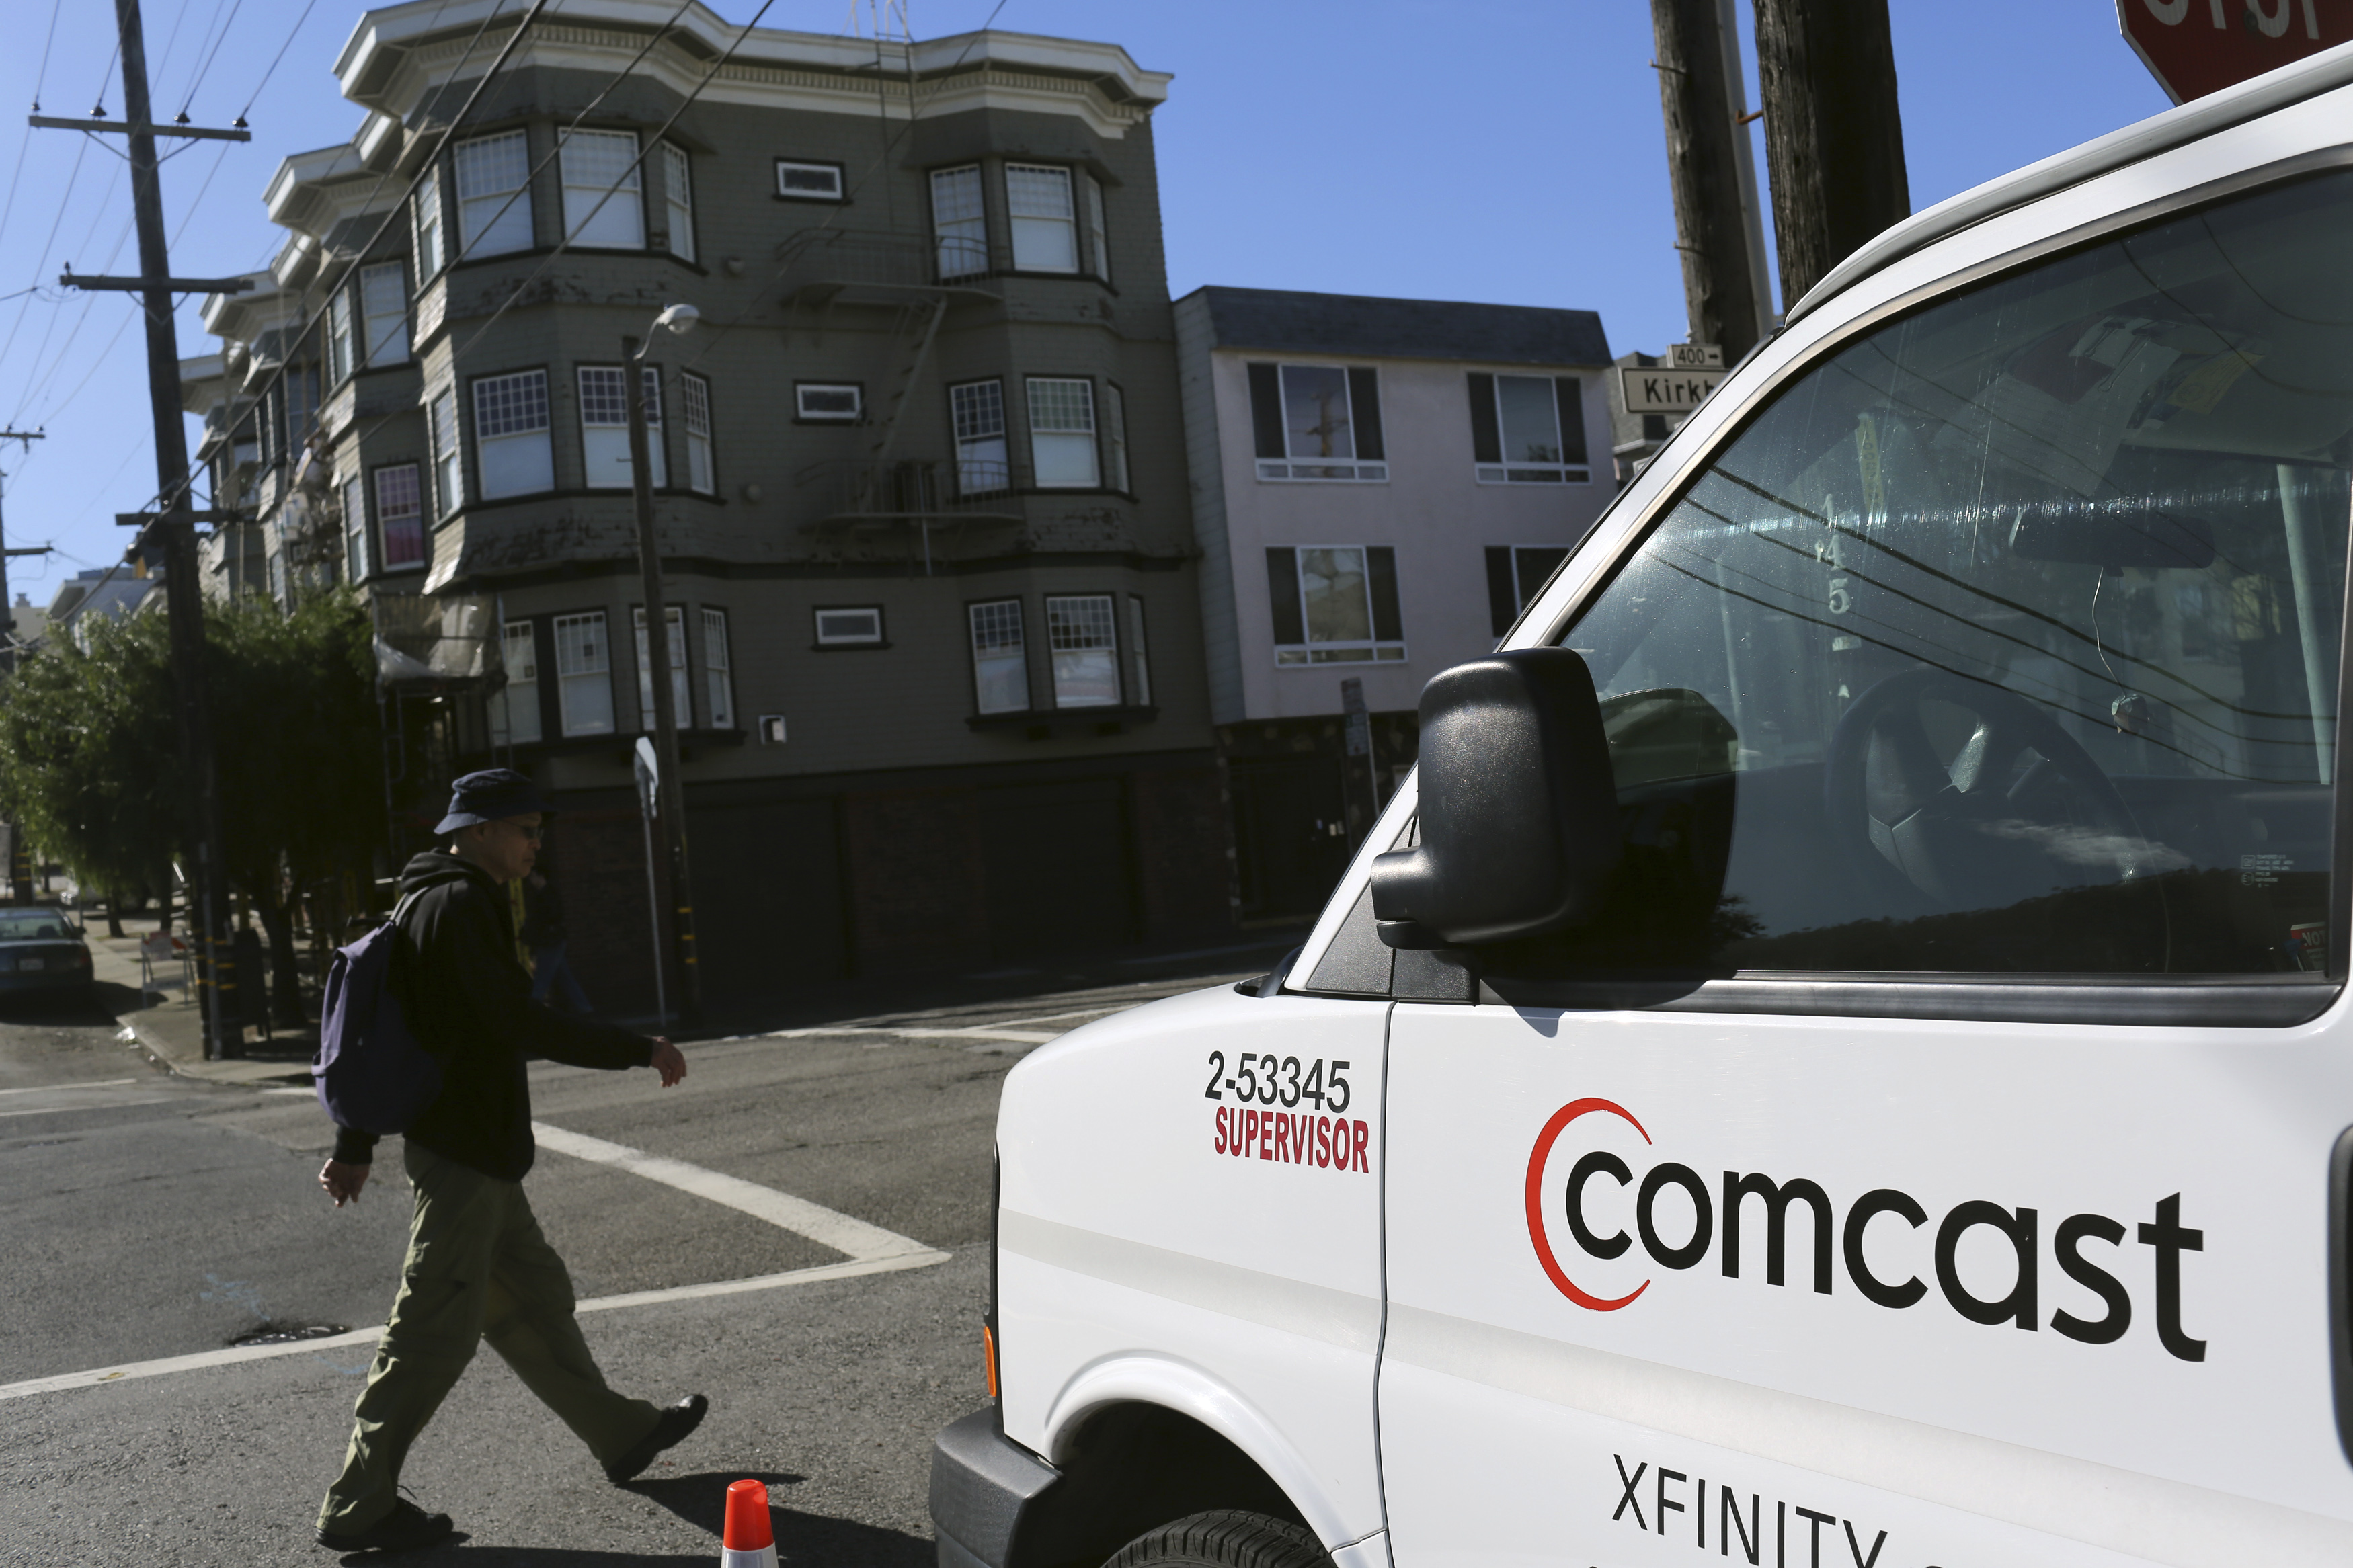 A Comcast sign is shown on the side of a vehicle in San Francisco, California February 13, 2014. Comcast Corp's proposed $45.2 billion takeover of Time Warner Cable Inc could face close scrutiny from U.S. antitrust regulators because of the deal's potential to reshape the country's pay TV and broadband markets.   REUTERS/Robert Galbraith  (UNITED STATES - Tags: MEDIA BUSINESS) - RTX18RVC